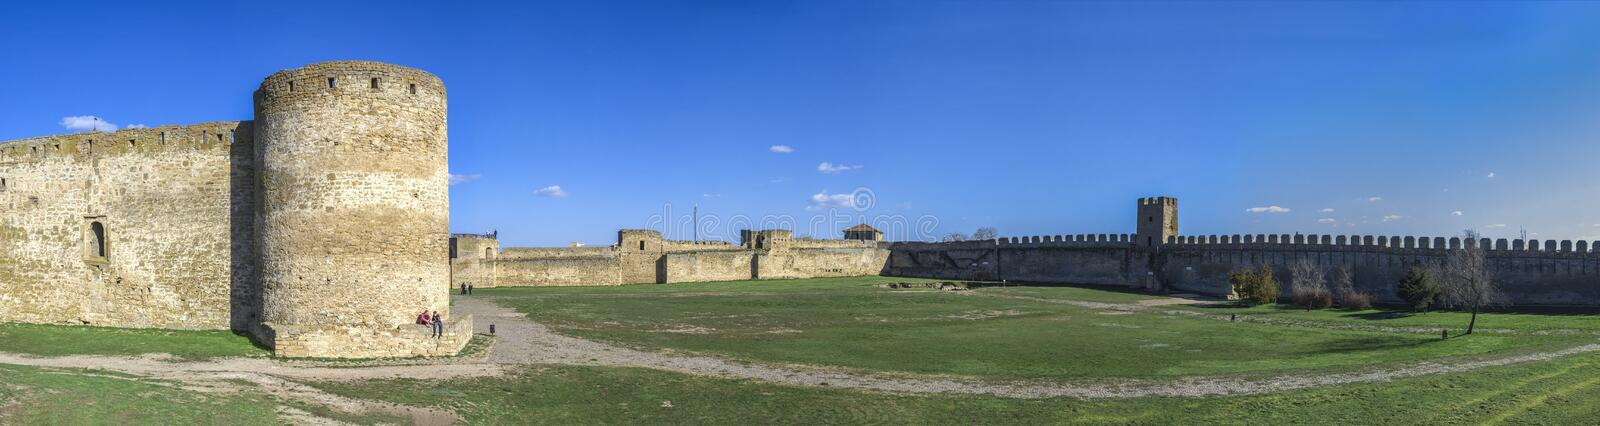 Fortress Walls of the Akkerman Citadel in Ukraine. Akkerman, Ukraine - 03.23.2019. Panoramic view of the Fortress walls and towers from the inside of the stock images